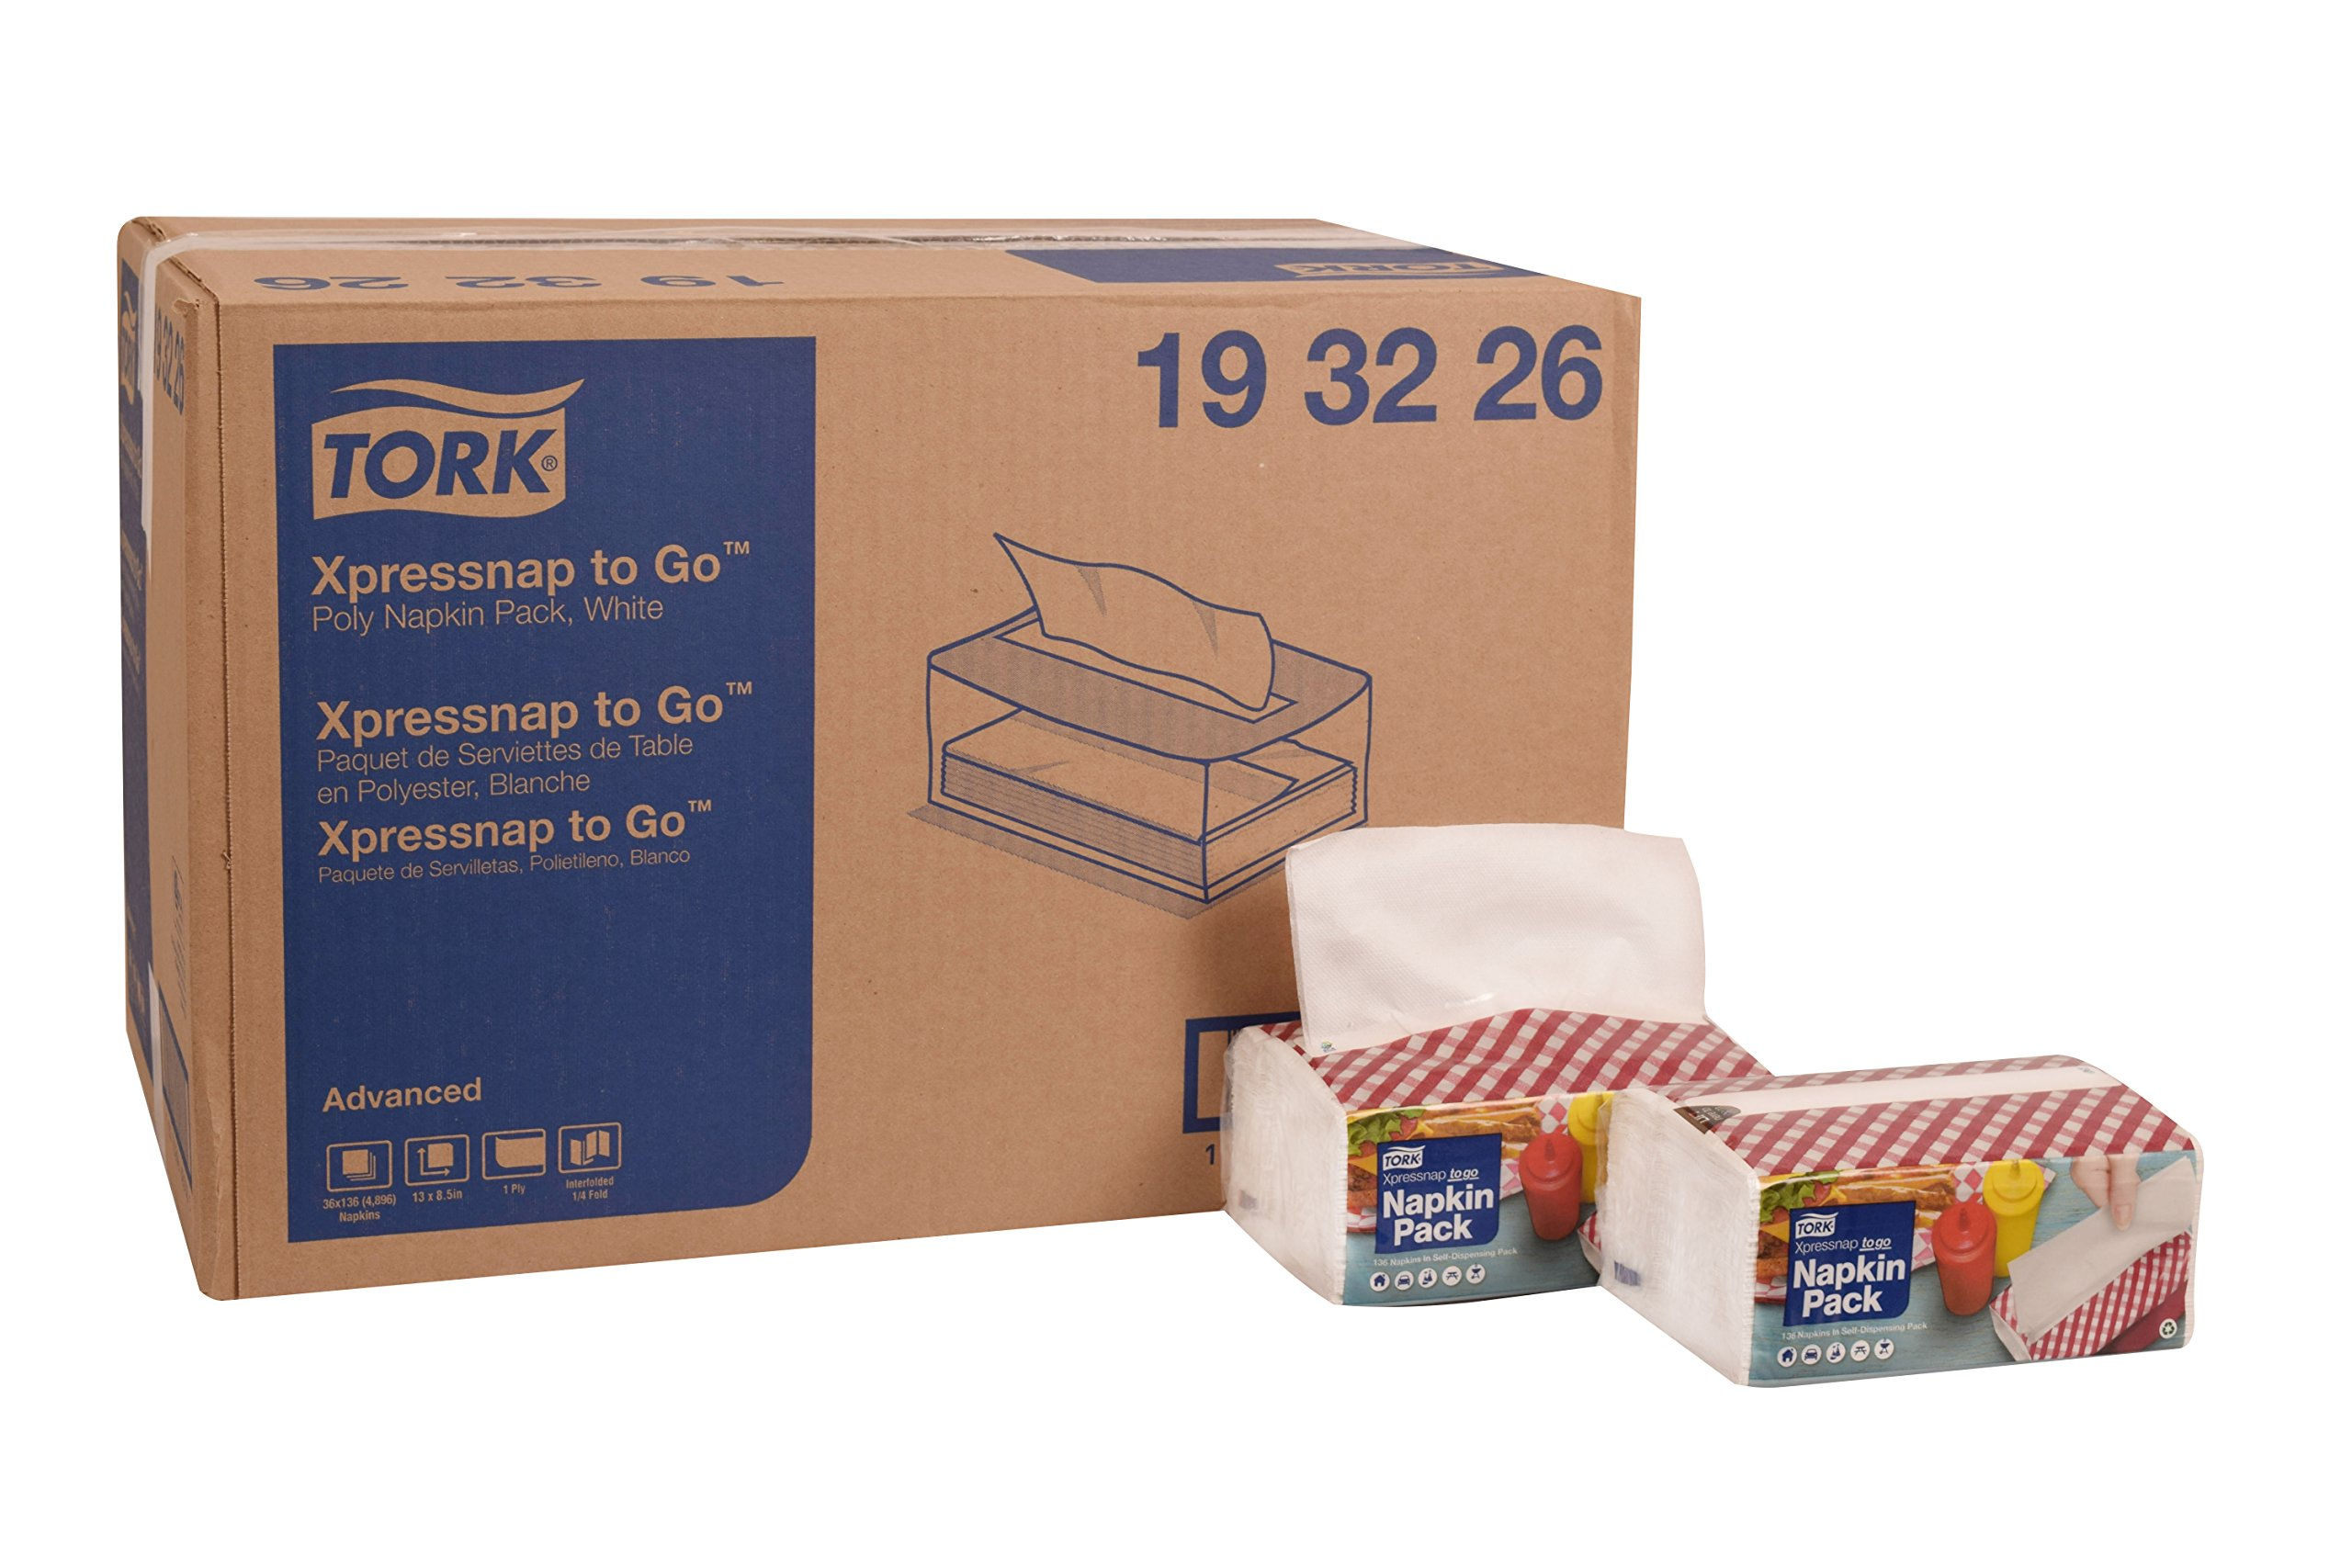 Tork 193226 Xpressnap to Go Portable Napkin Pack, Interfold, 1/4 Fold, 1-Ply, 8.5'' Length x 13.0'' Width, White (Case of 36 Packs, 136 per Pack, 4,896 Napkins)